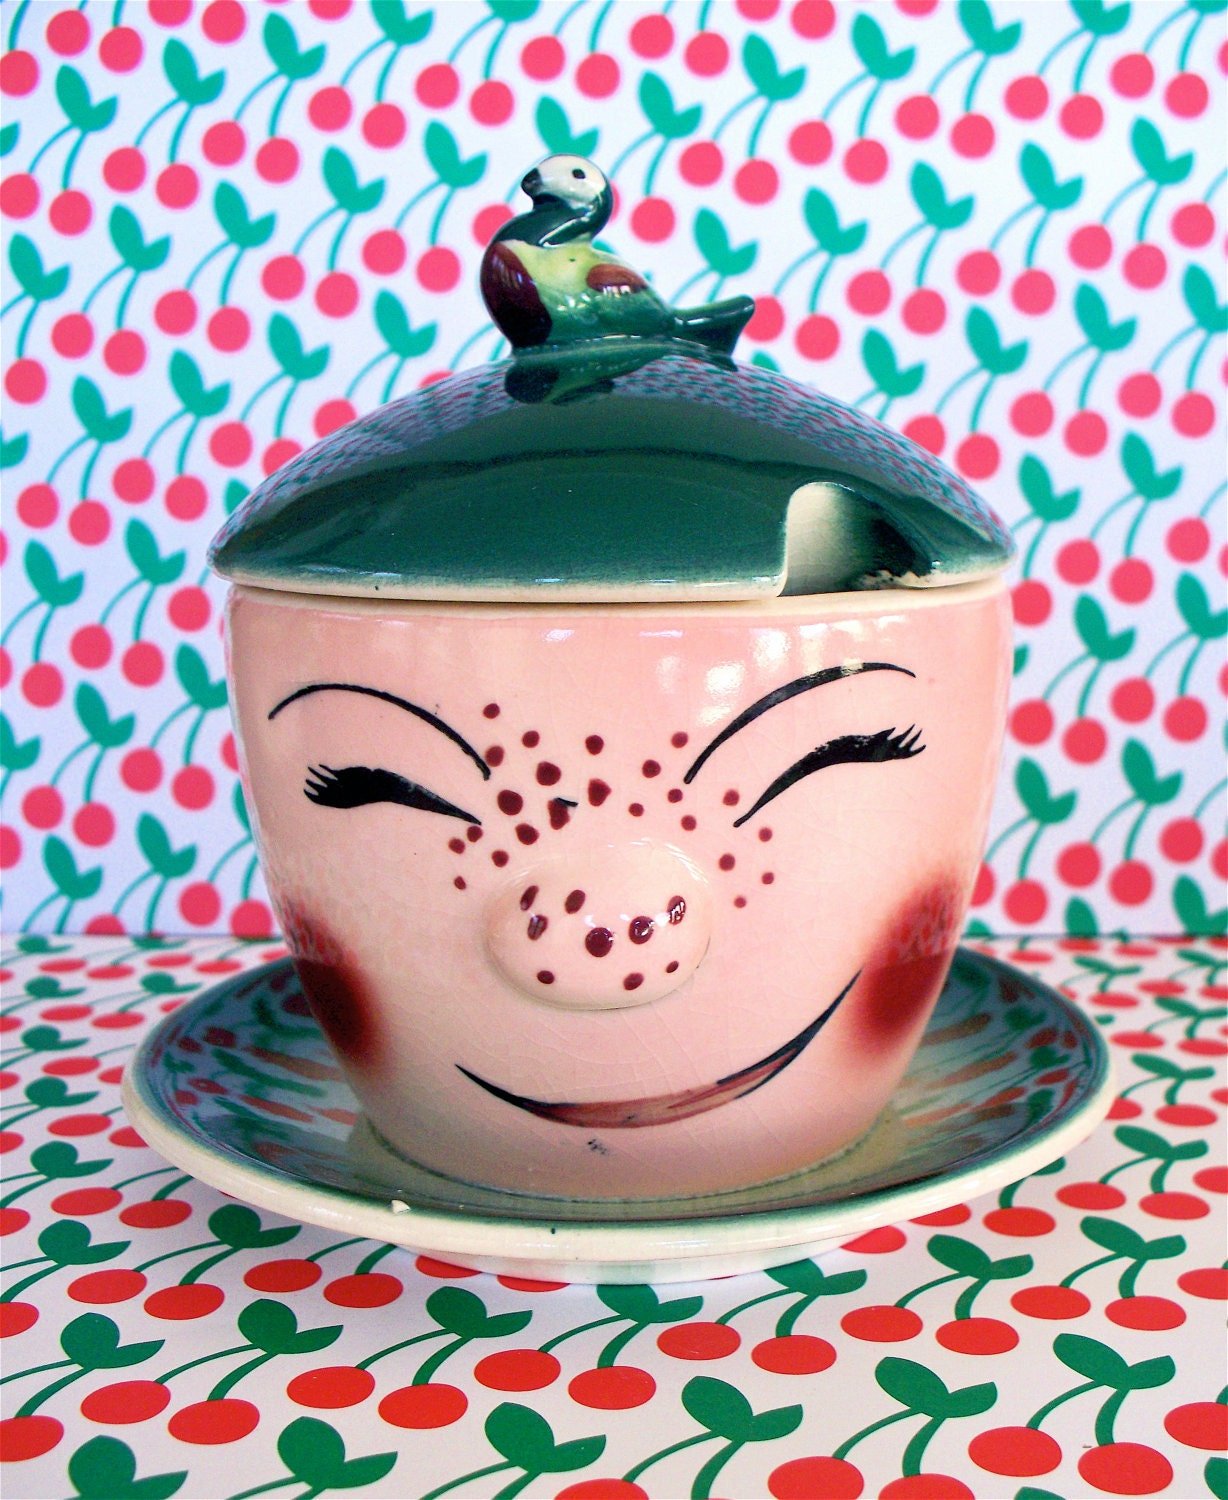 Vintage  Kitsch Cheeky Face Freckled Happy Covered Sugar Bowl Dish Pot Deforest  Like Japan